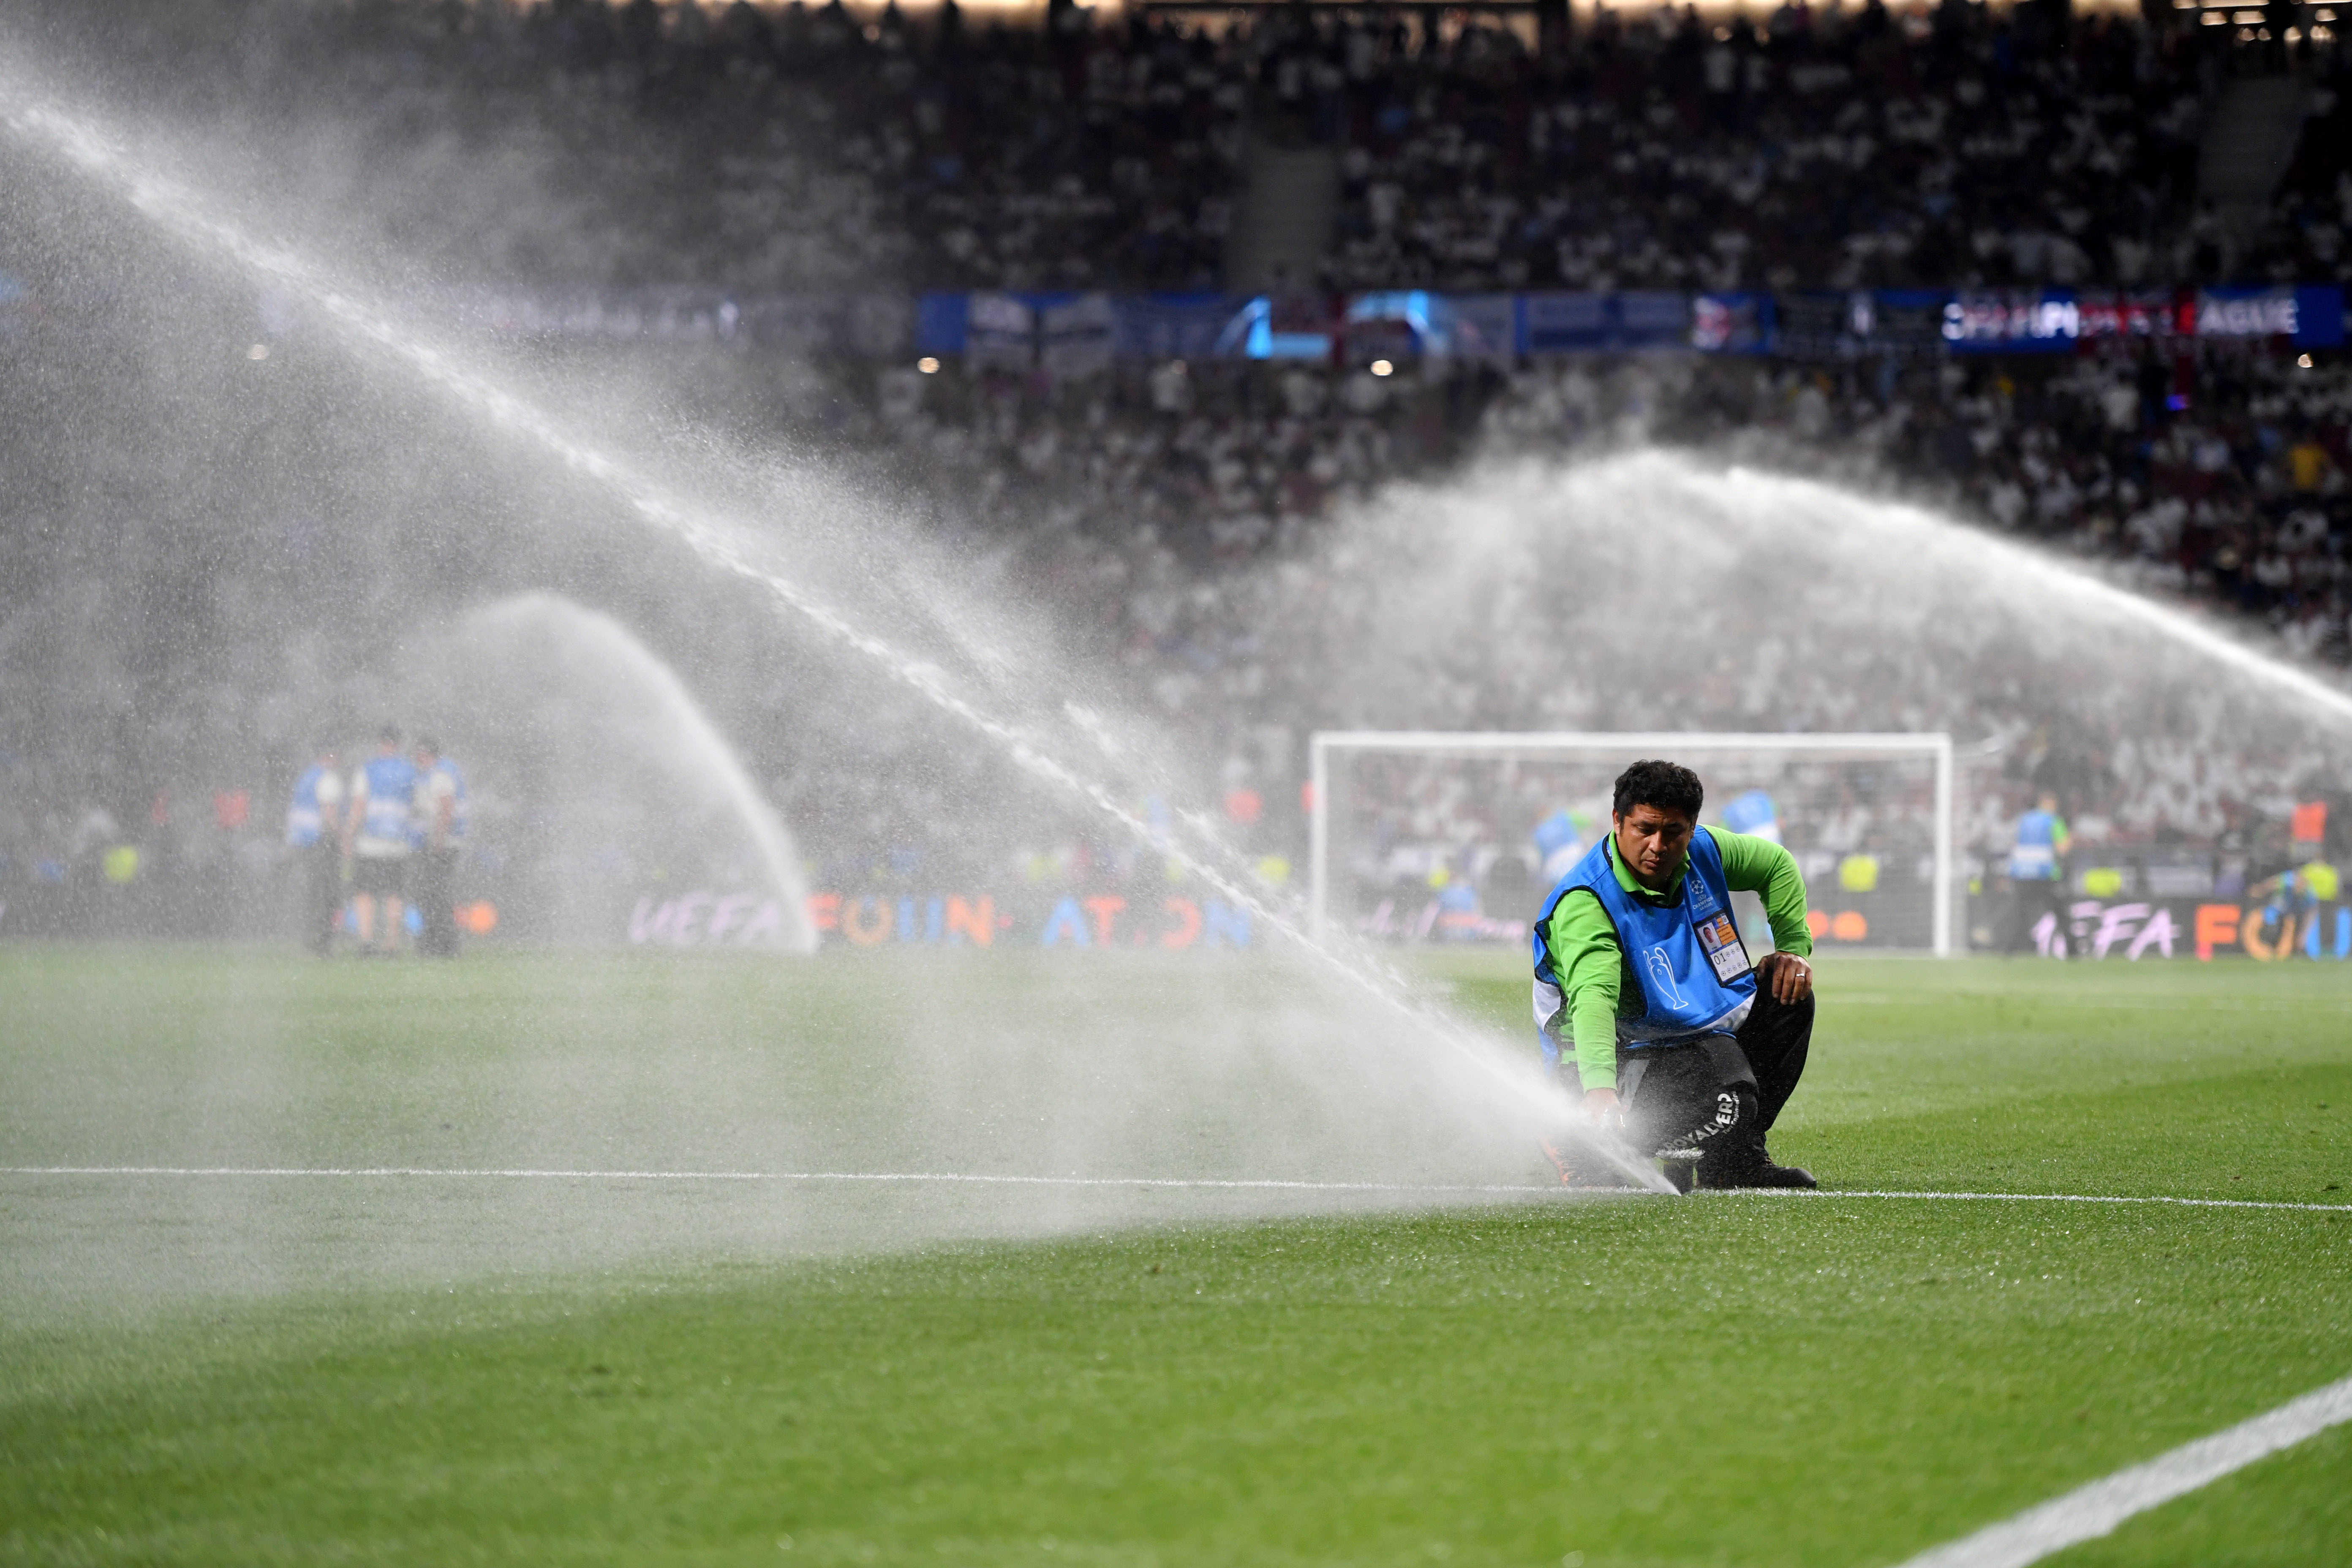 Major football clubs need to create the right climate